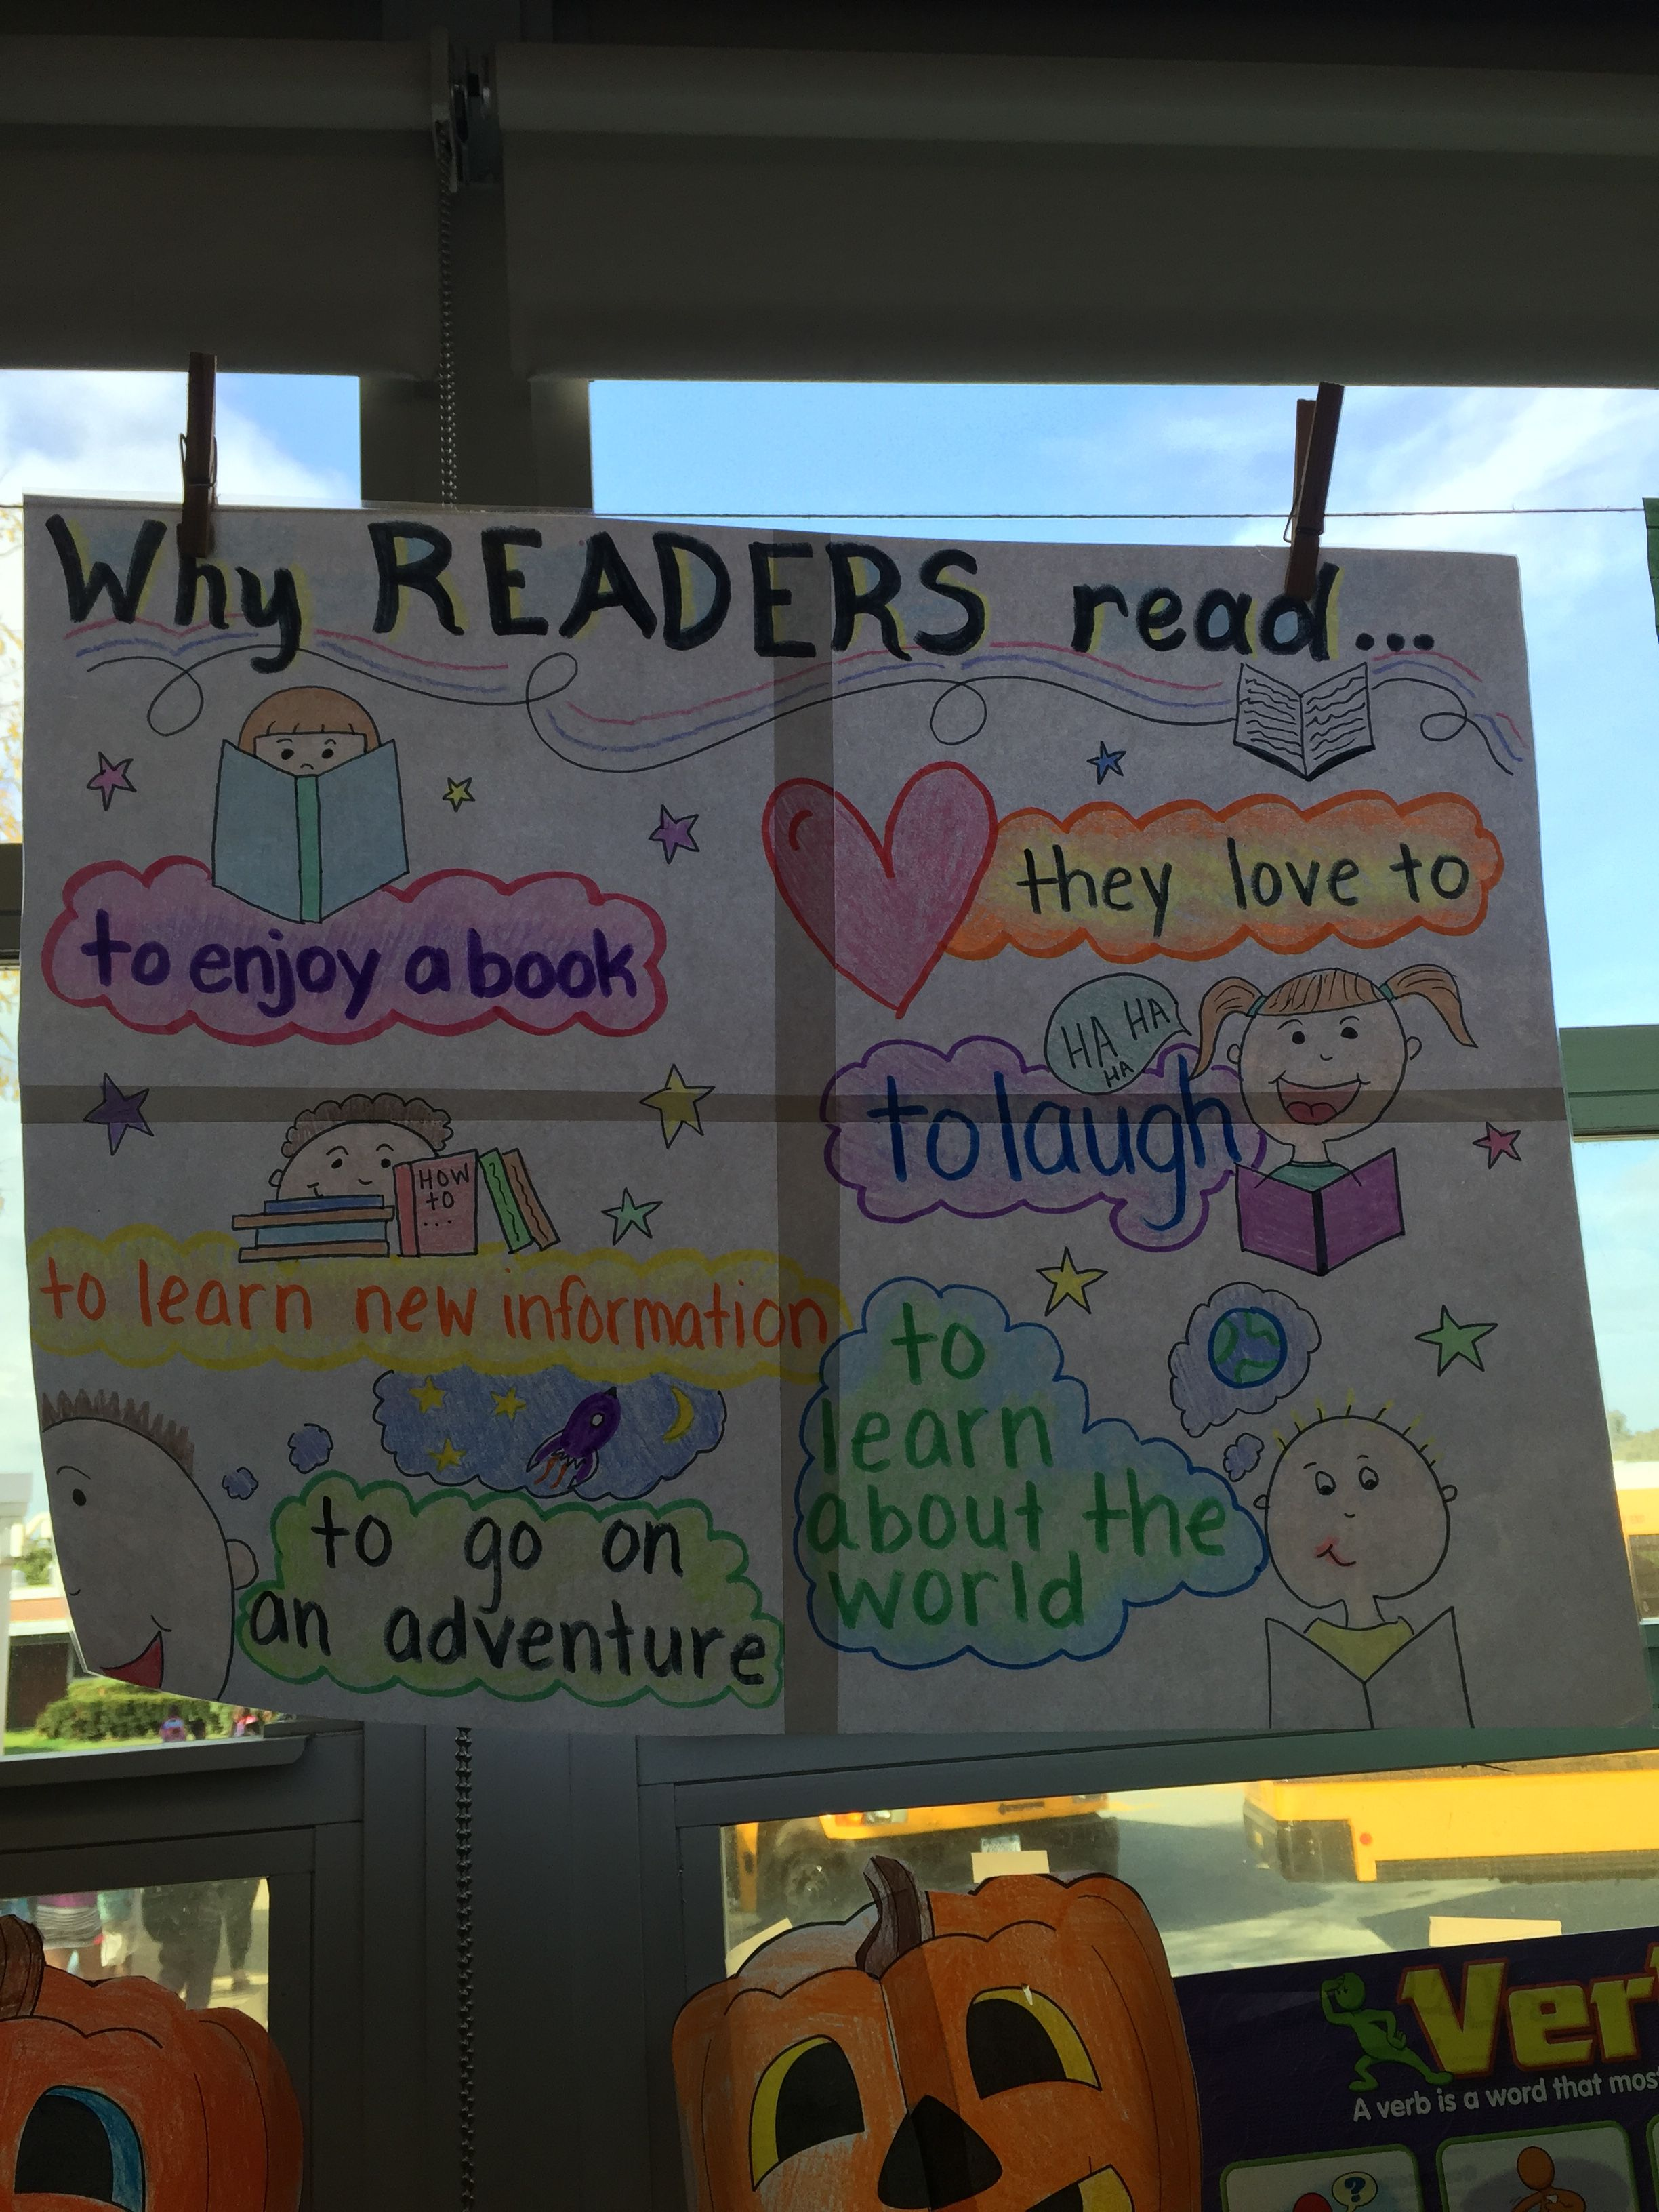 Why Readers Read